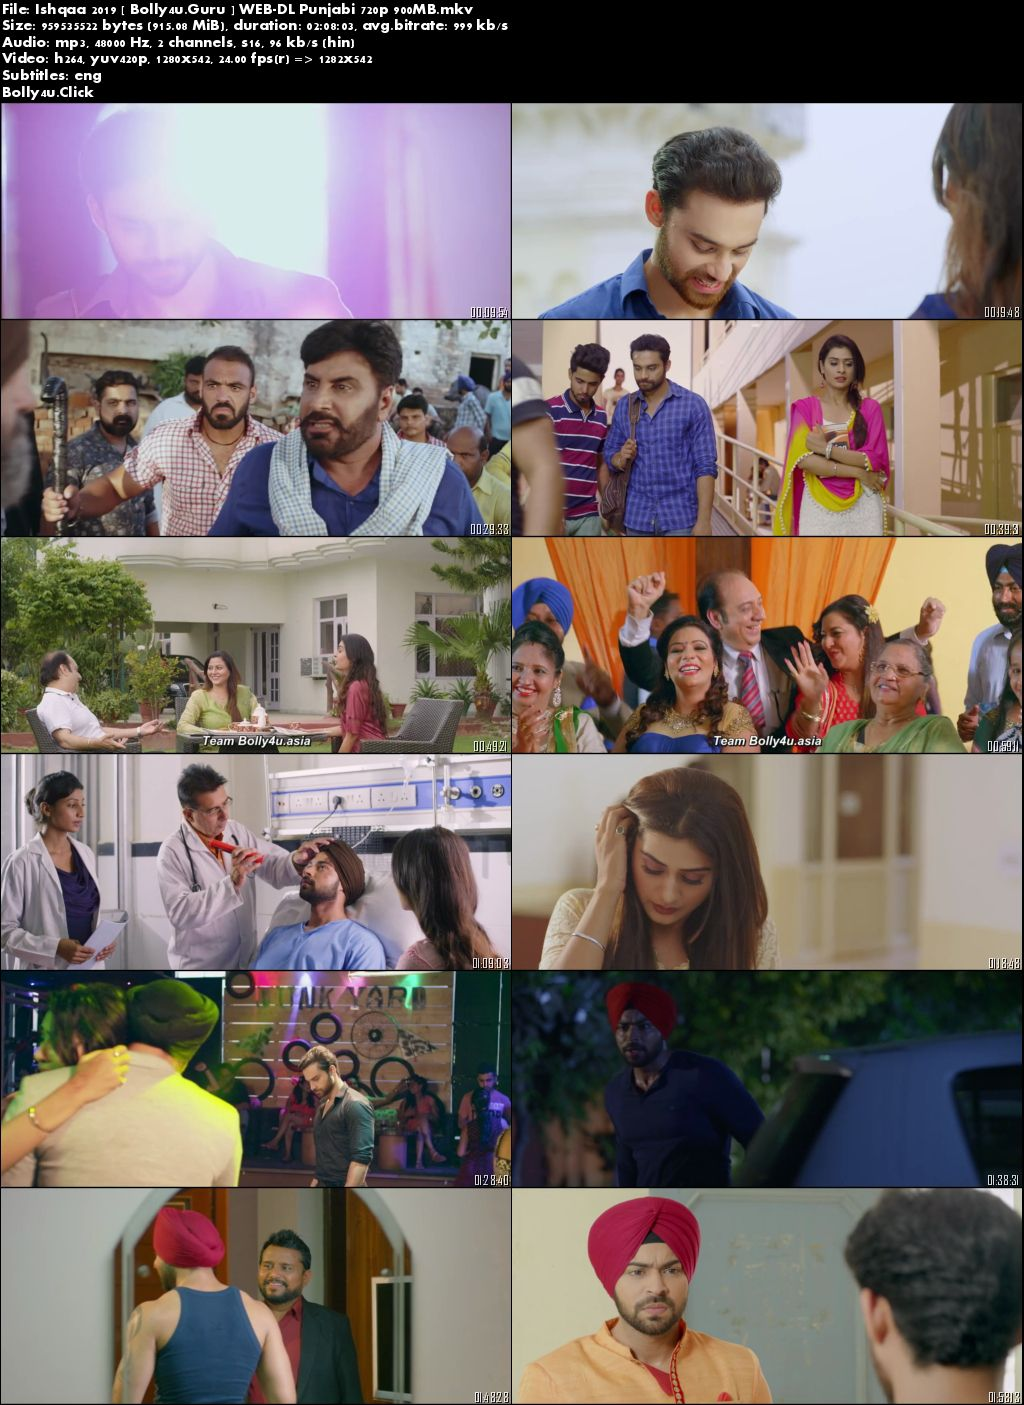 Ishqaa 2019 WEB-DL 900MB Punjabi 720p Download